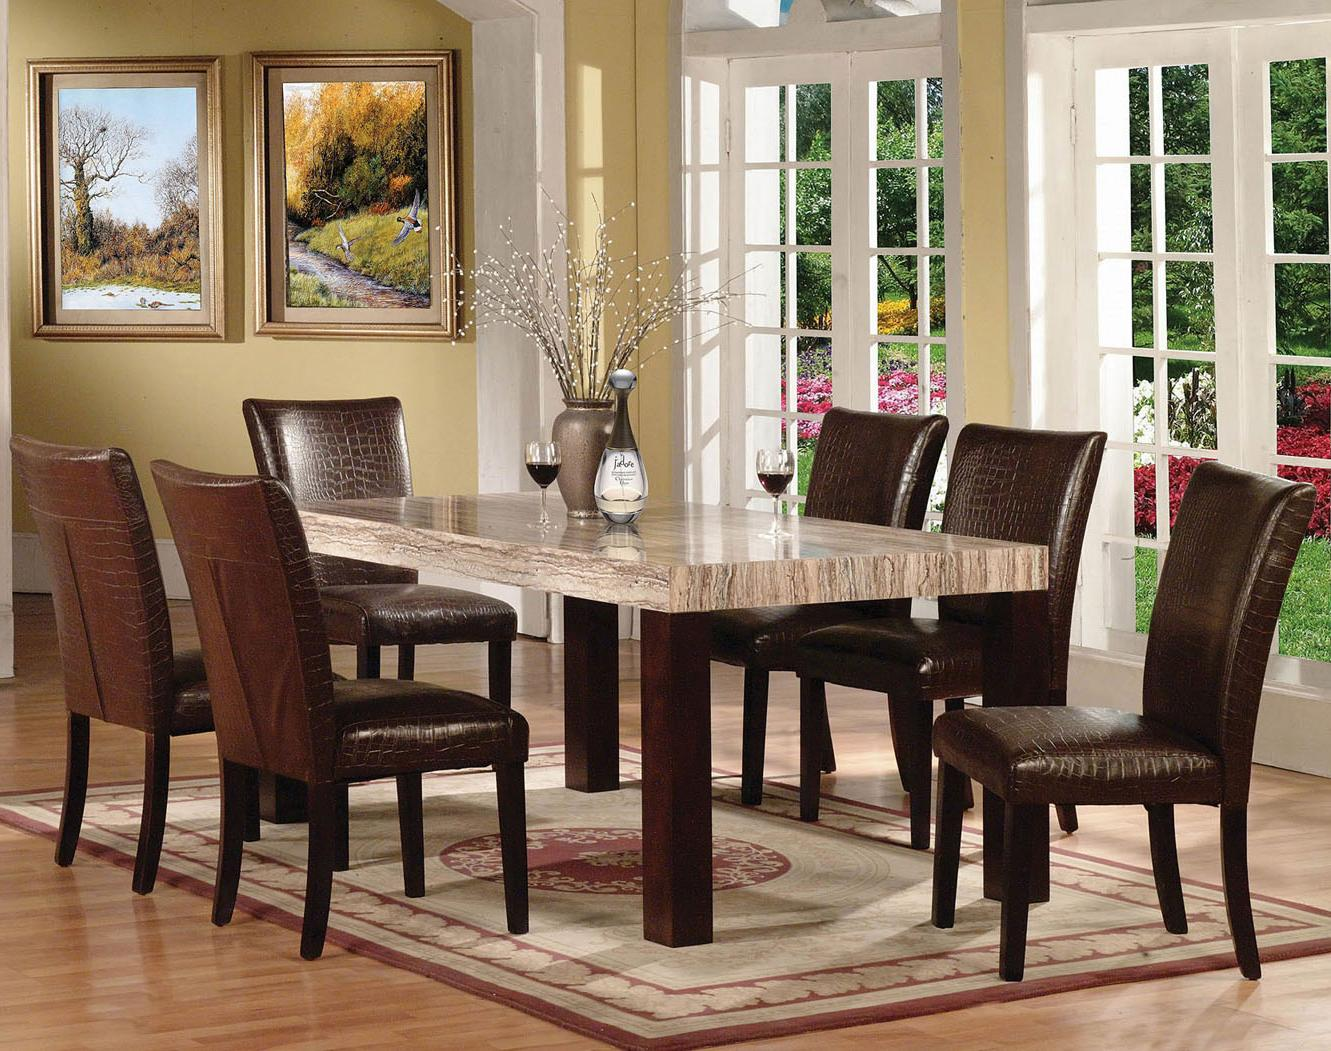 Acme Furniture Fraser 7 Piece Table & Chair Set - Item Number: 70130SET